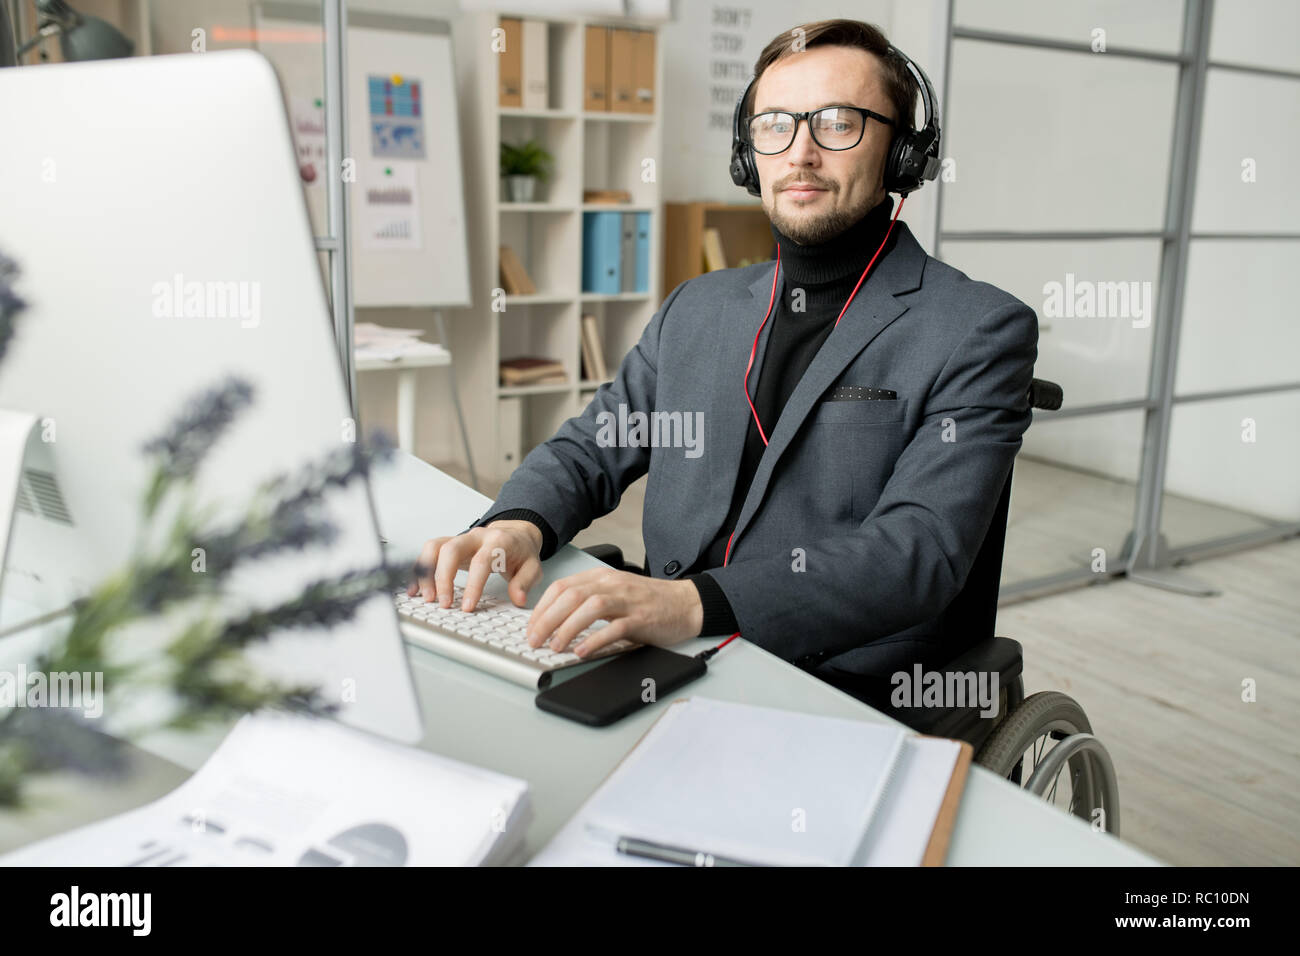 Disabled businessman working on computer - Stock Image